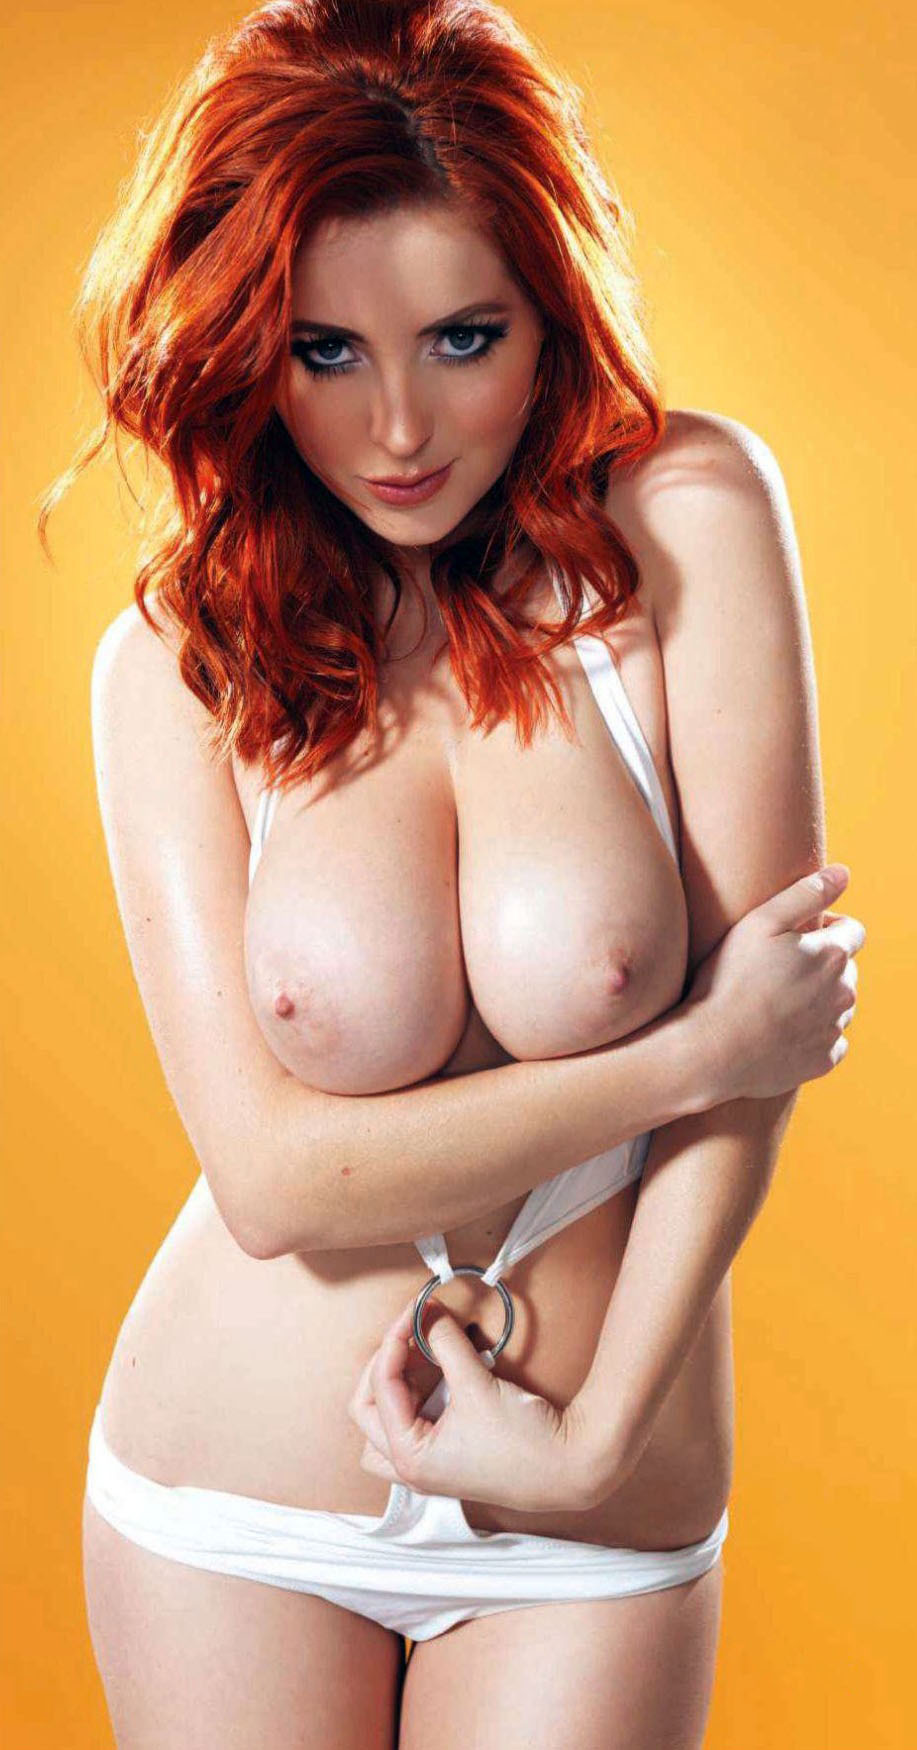 Sexy buxom redhead beauty with a naughty grin.